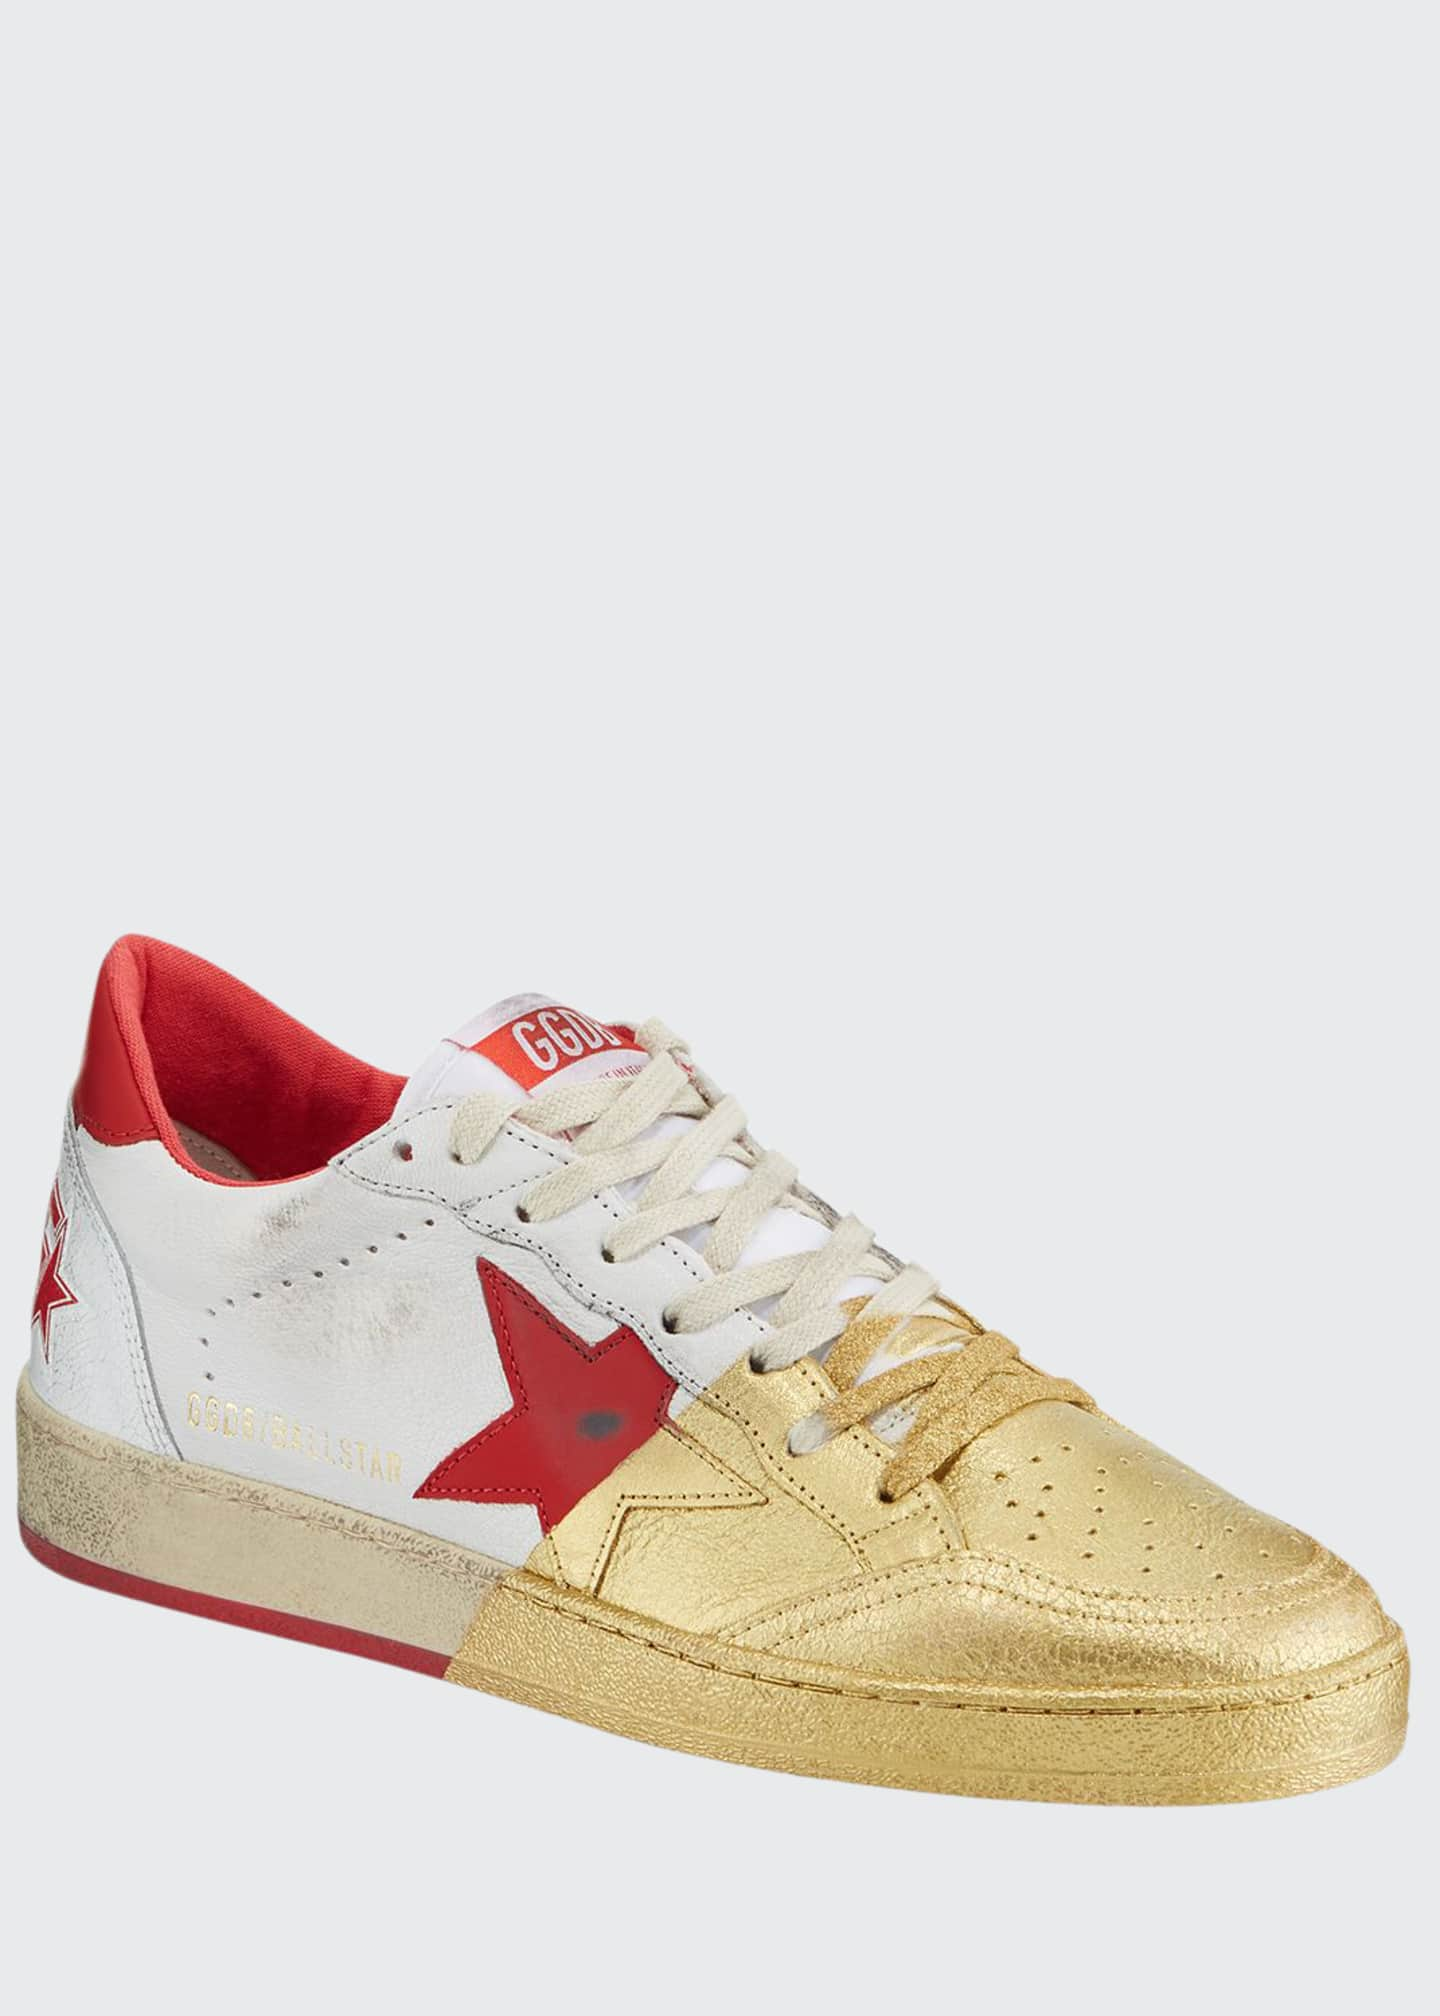 Golden Goose Men's Ball Star Distressed Leather Sneakers